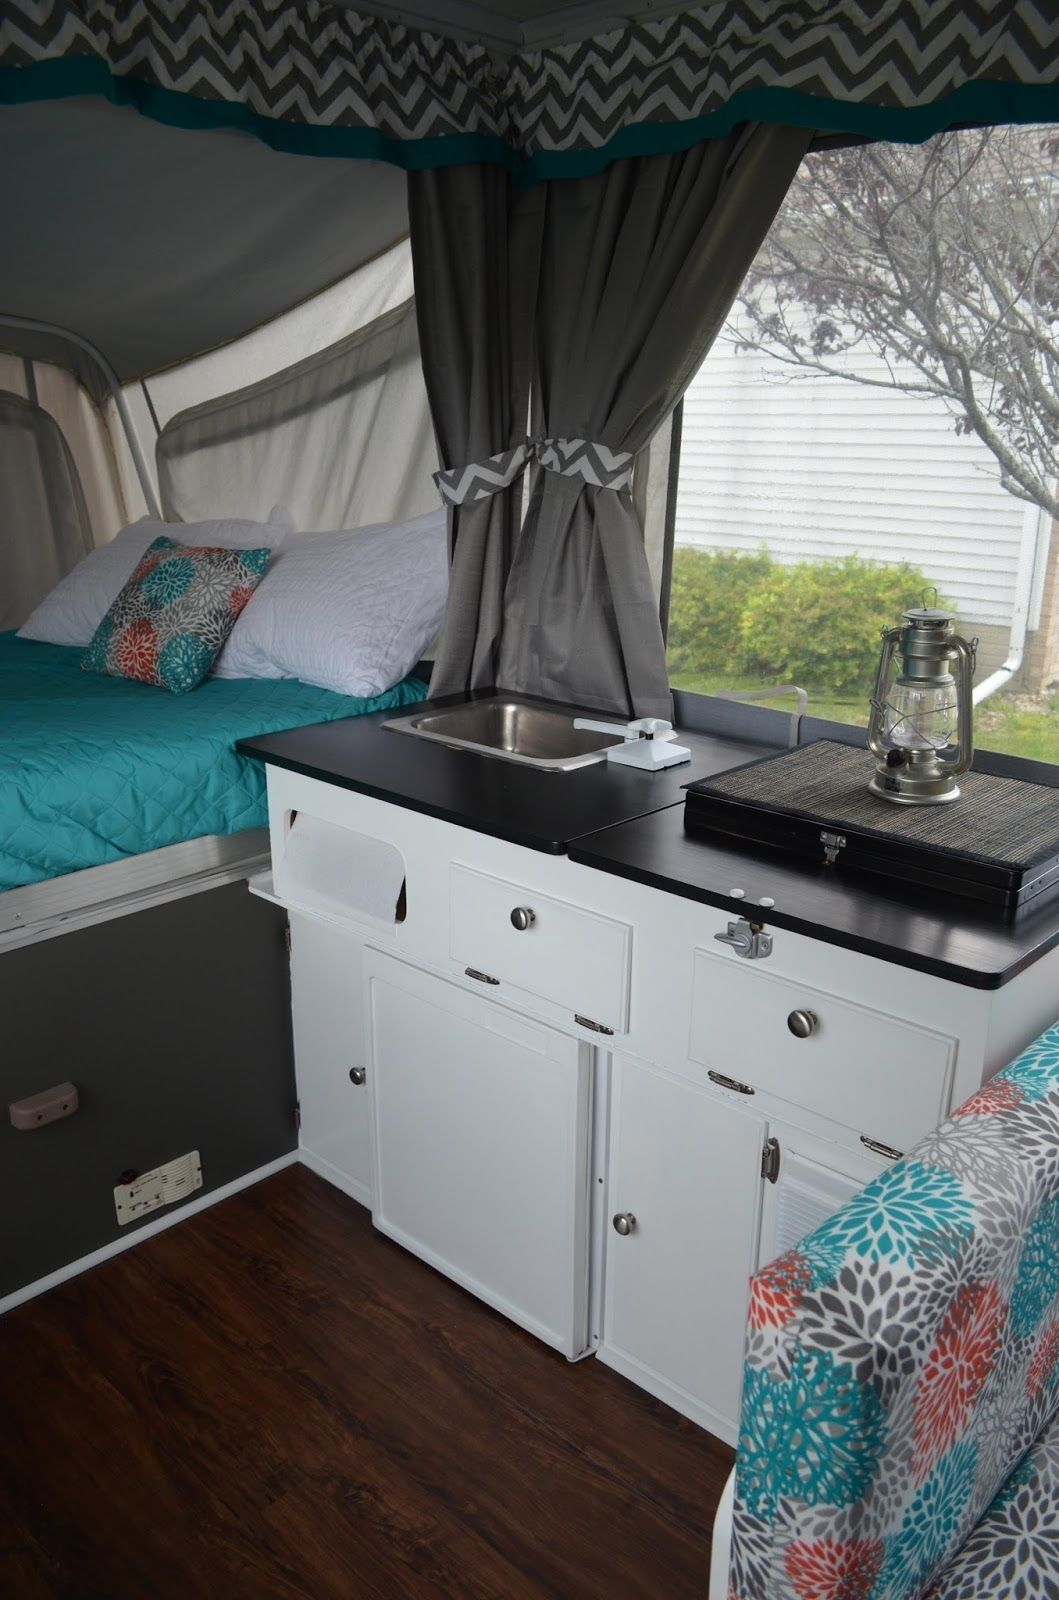 30 Creative Photo Of Pop Up Camper Ideas Are You Going To Haul A